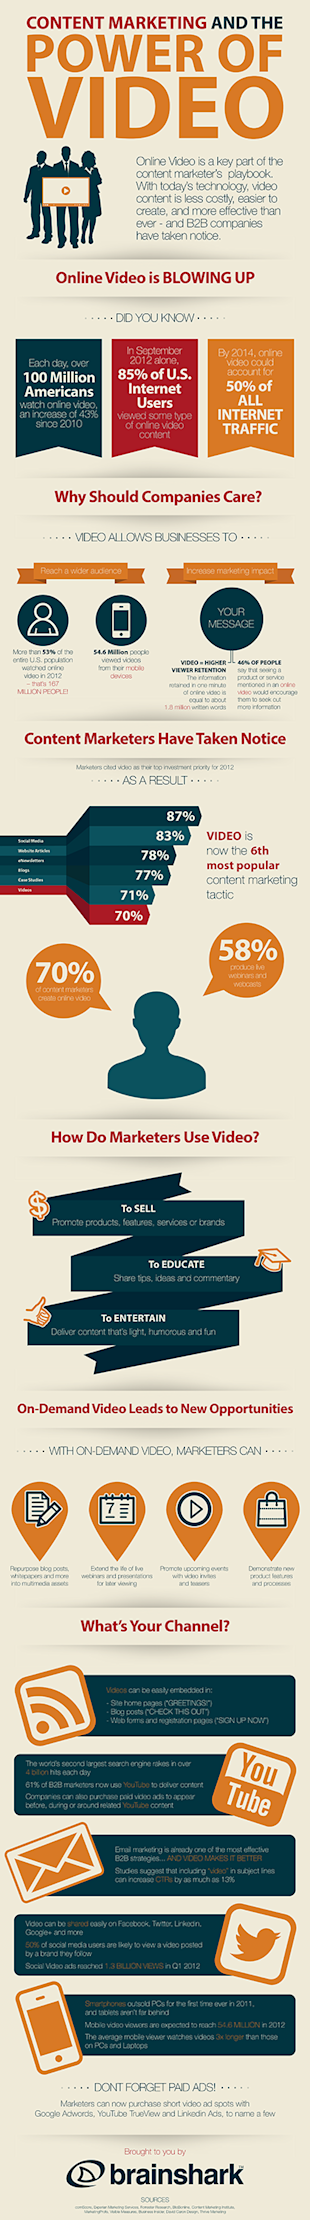 The Importance of Video in Social Media Marketing [Infographic] image Infographic the Power of Video